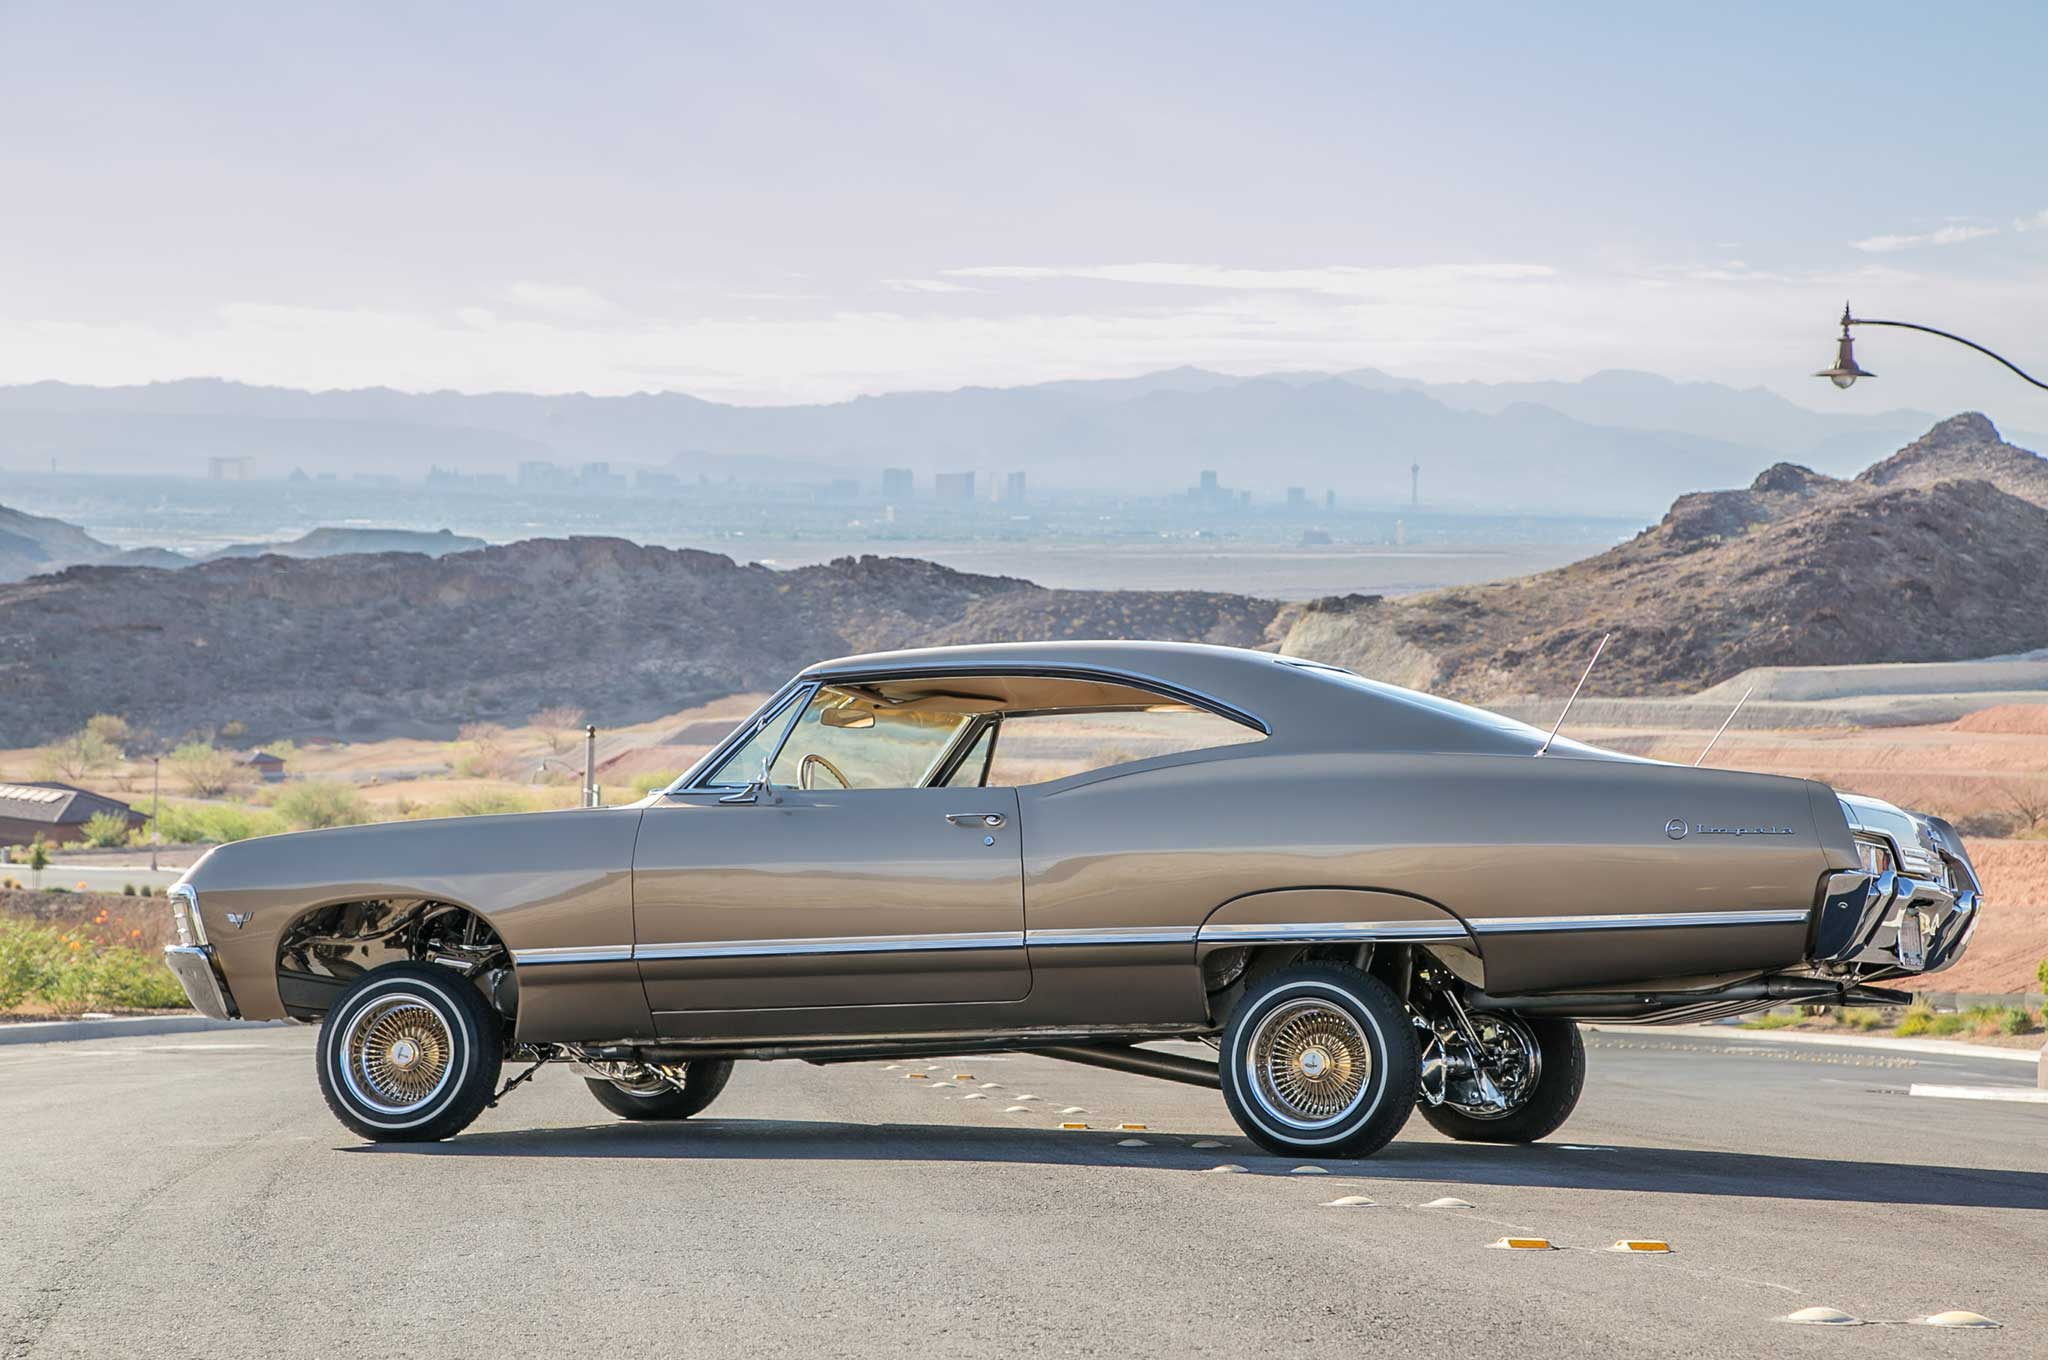 Lowrider Rims And Tires >> 1967 Chevrolet Impala - Cesar's Palace - Lowrider